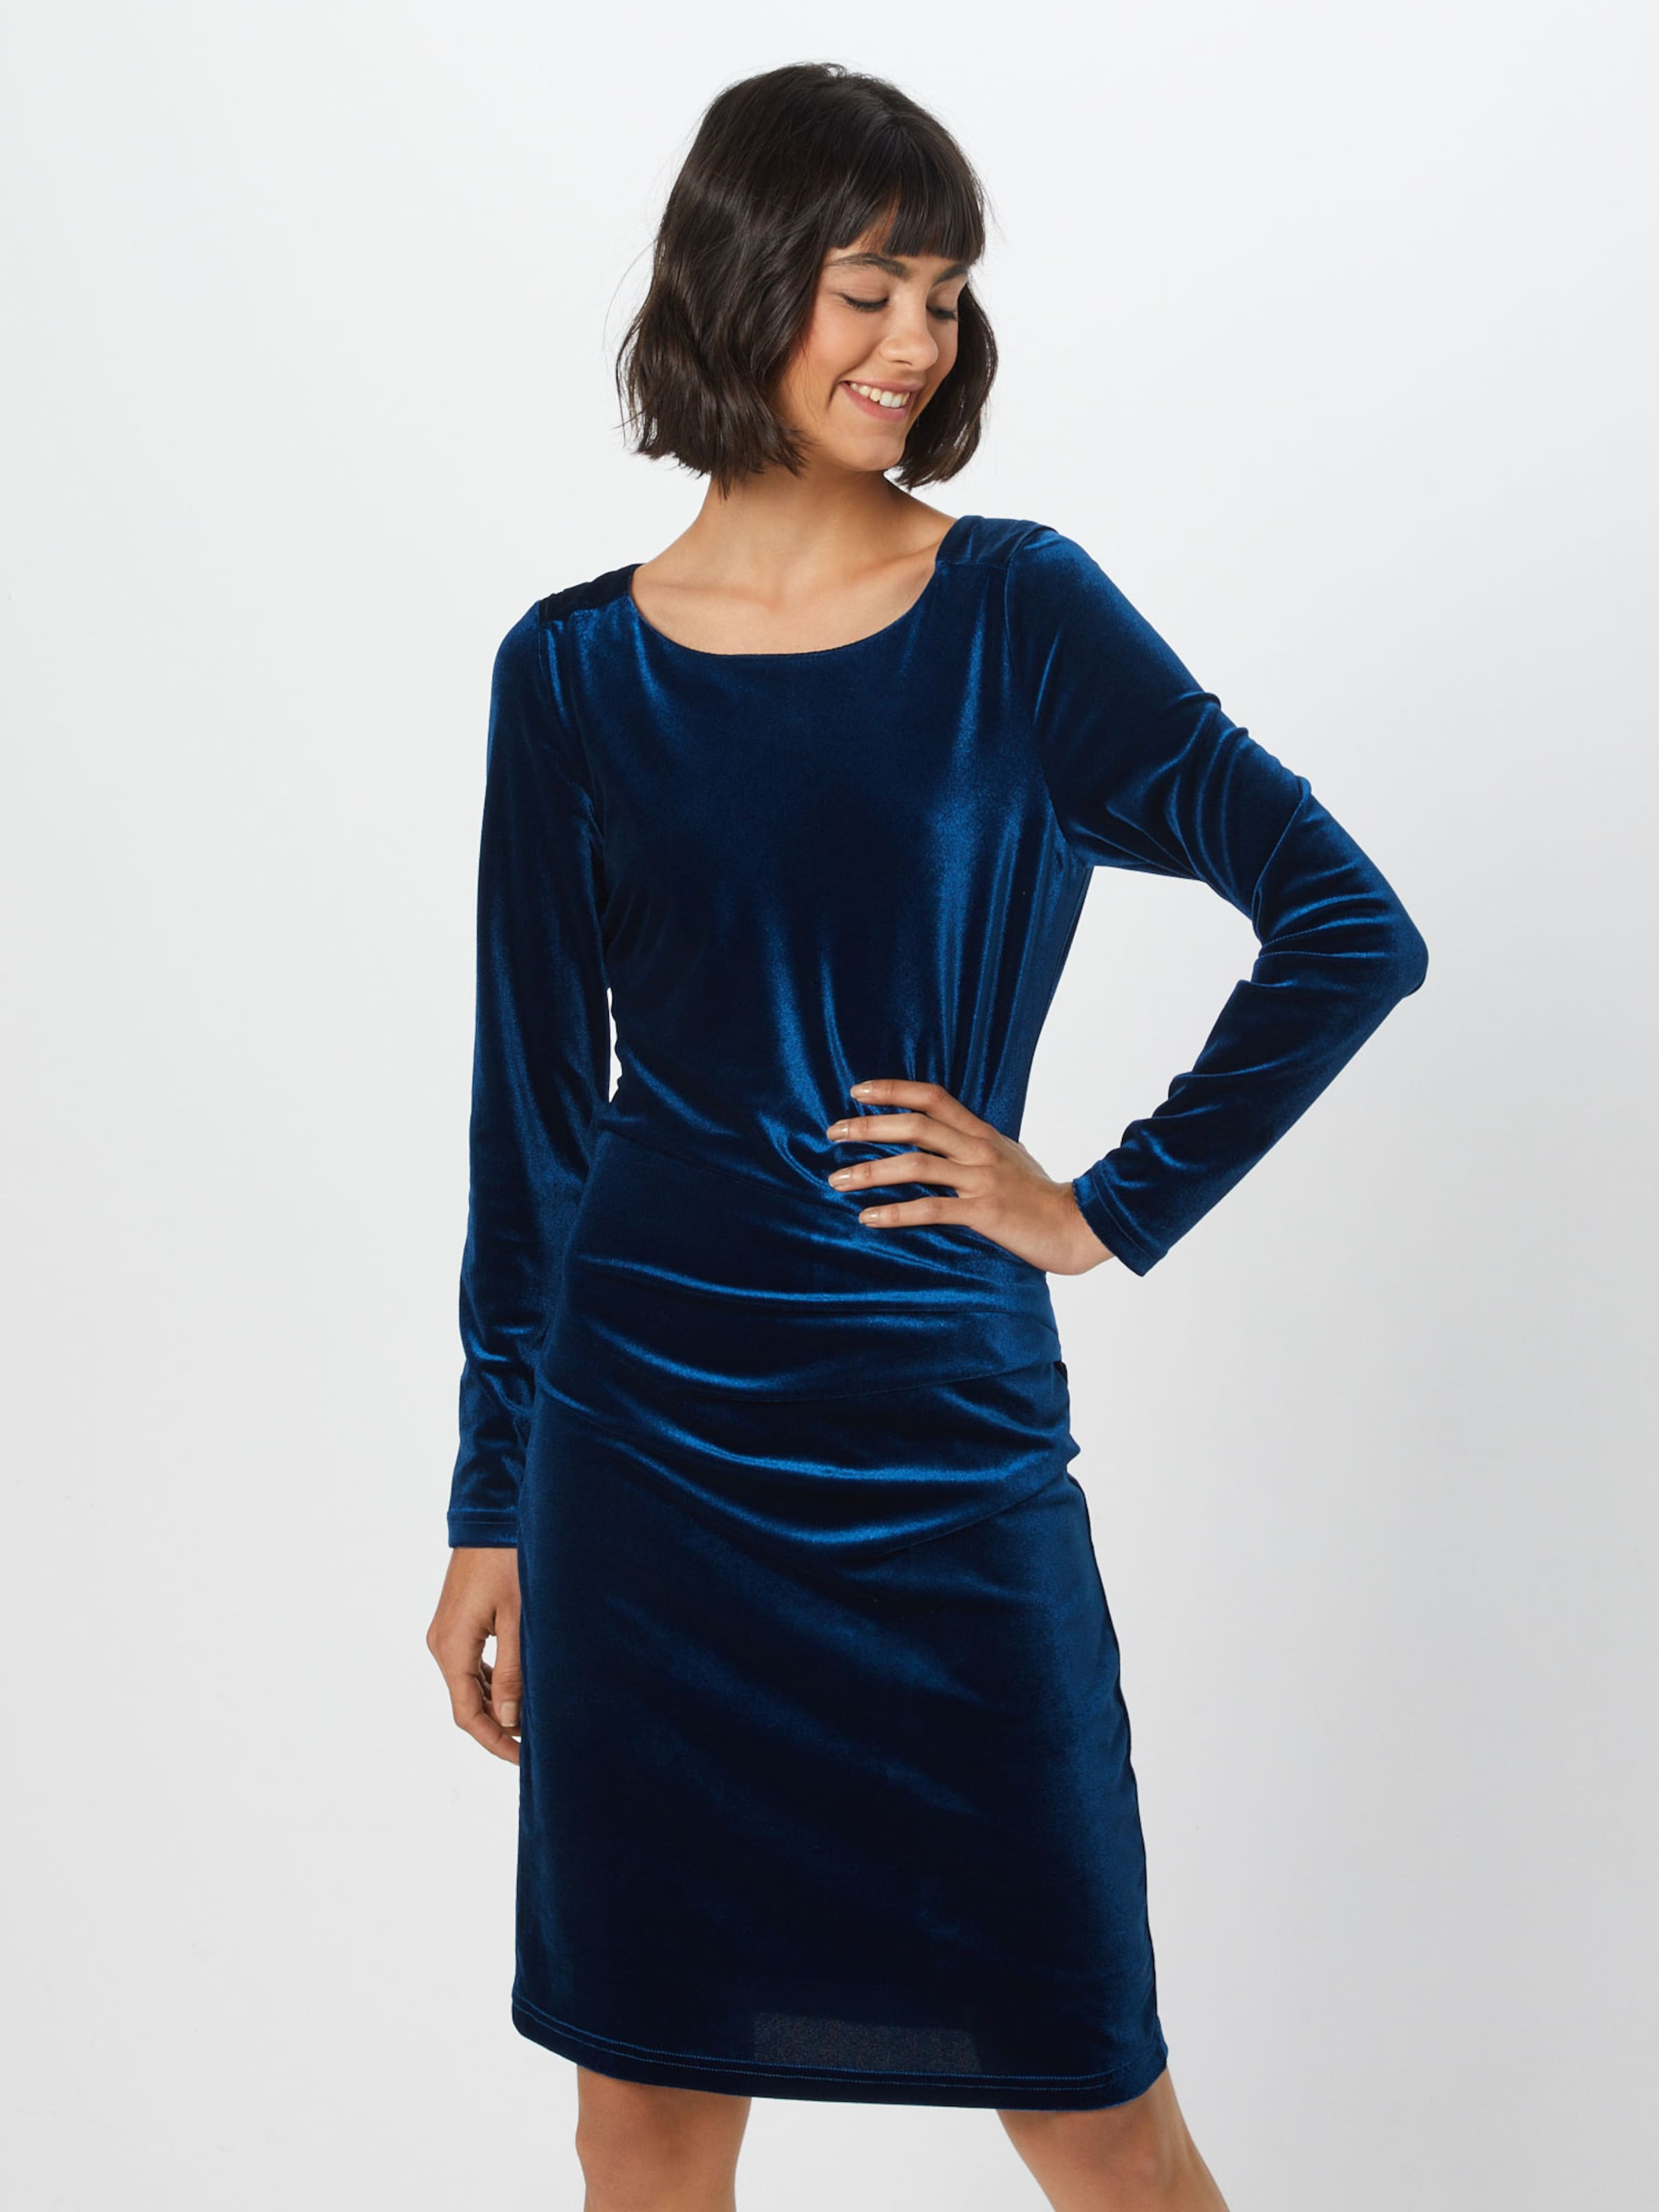 Kaffe Nuit De 'kelly Bleu En Robe Cocktail Dress' 3j5LAR4q